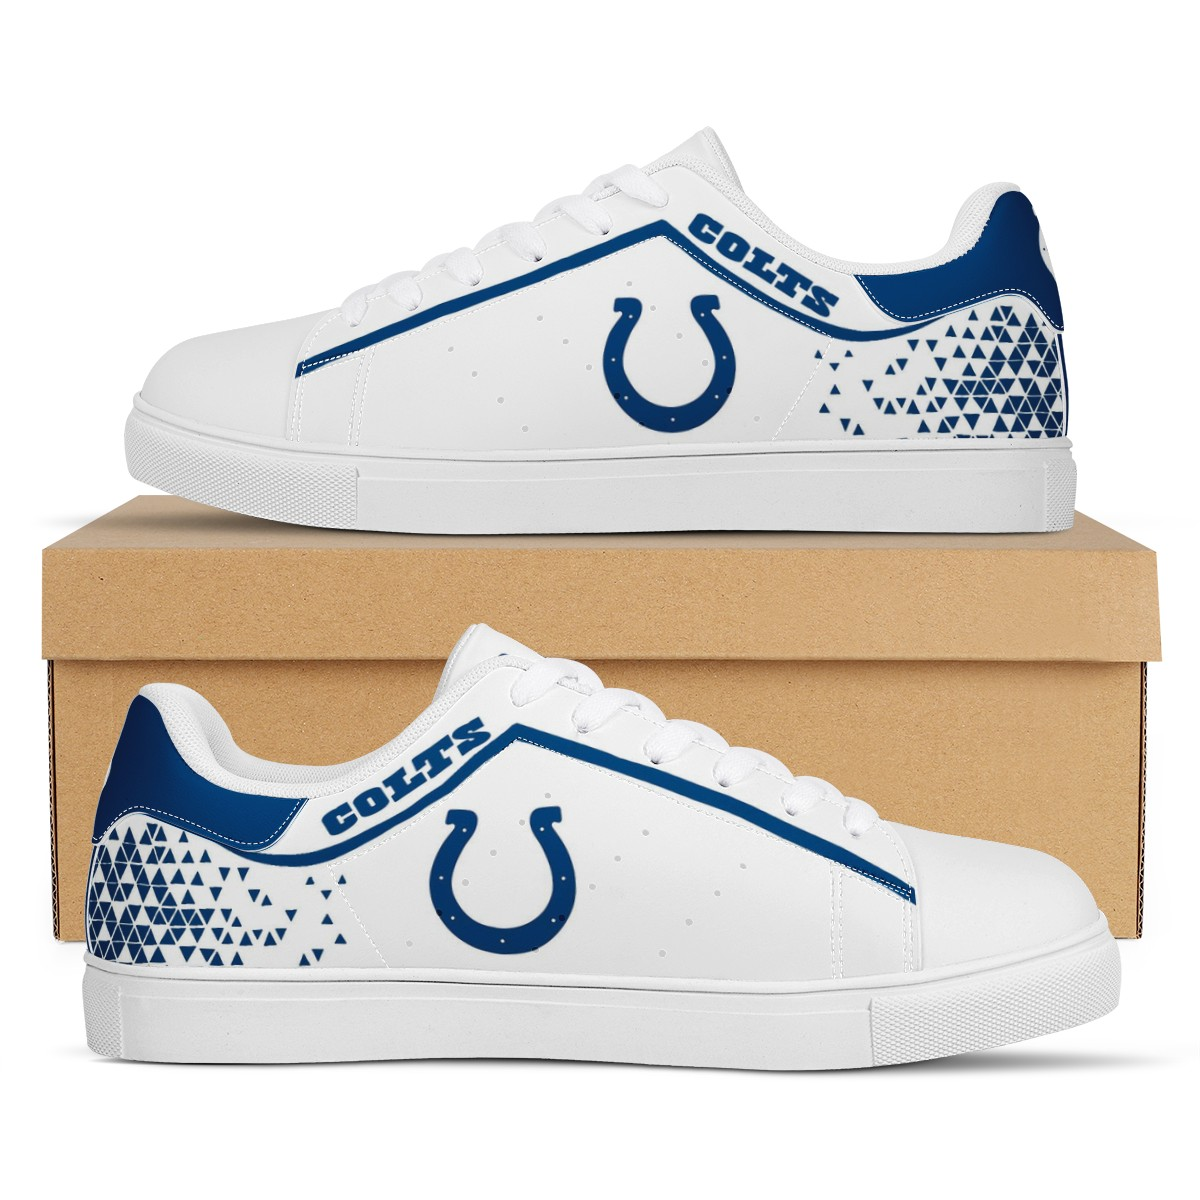 Men's Indianapolis Colts Low Top Leather Sneakers 002